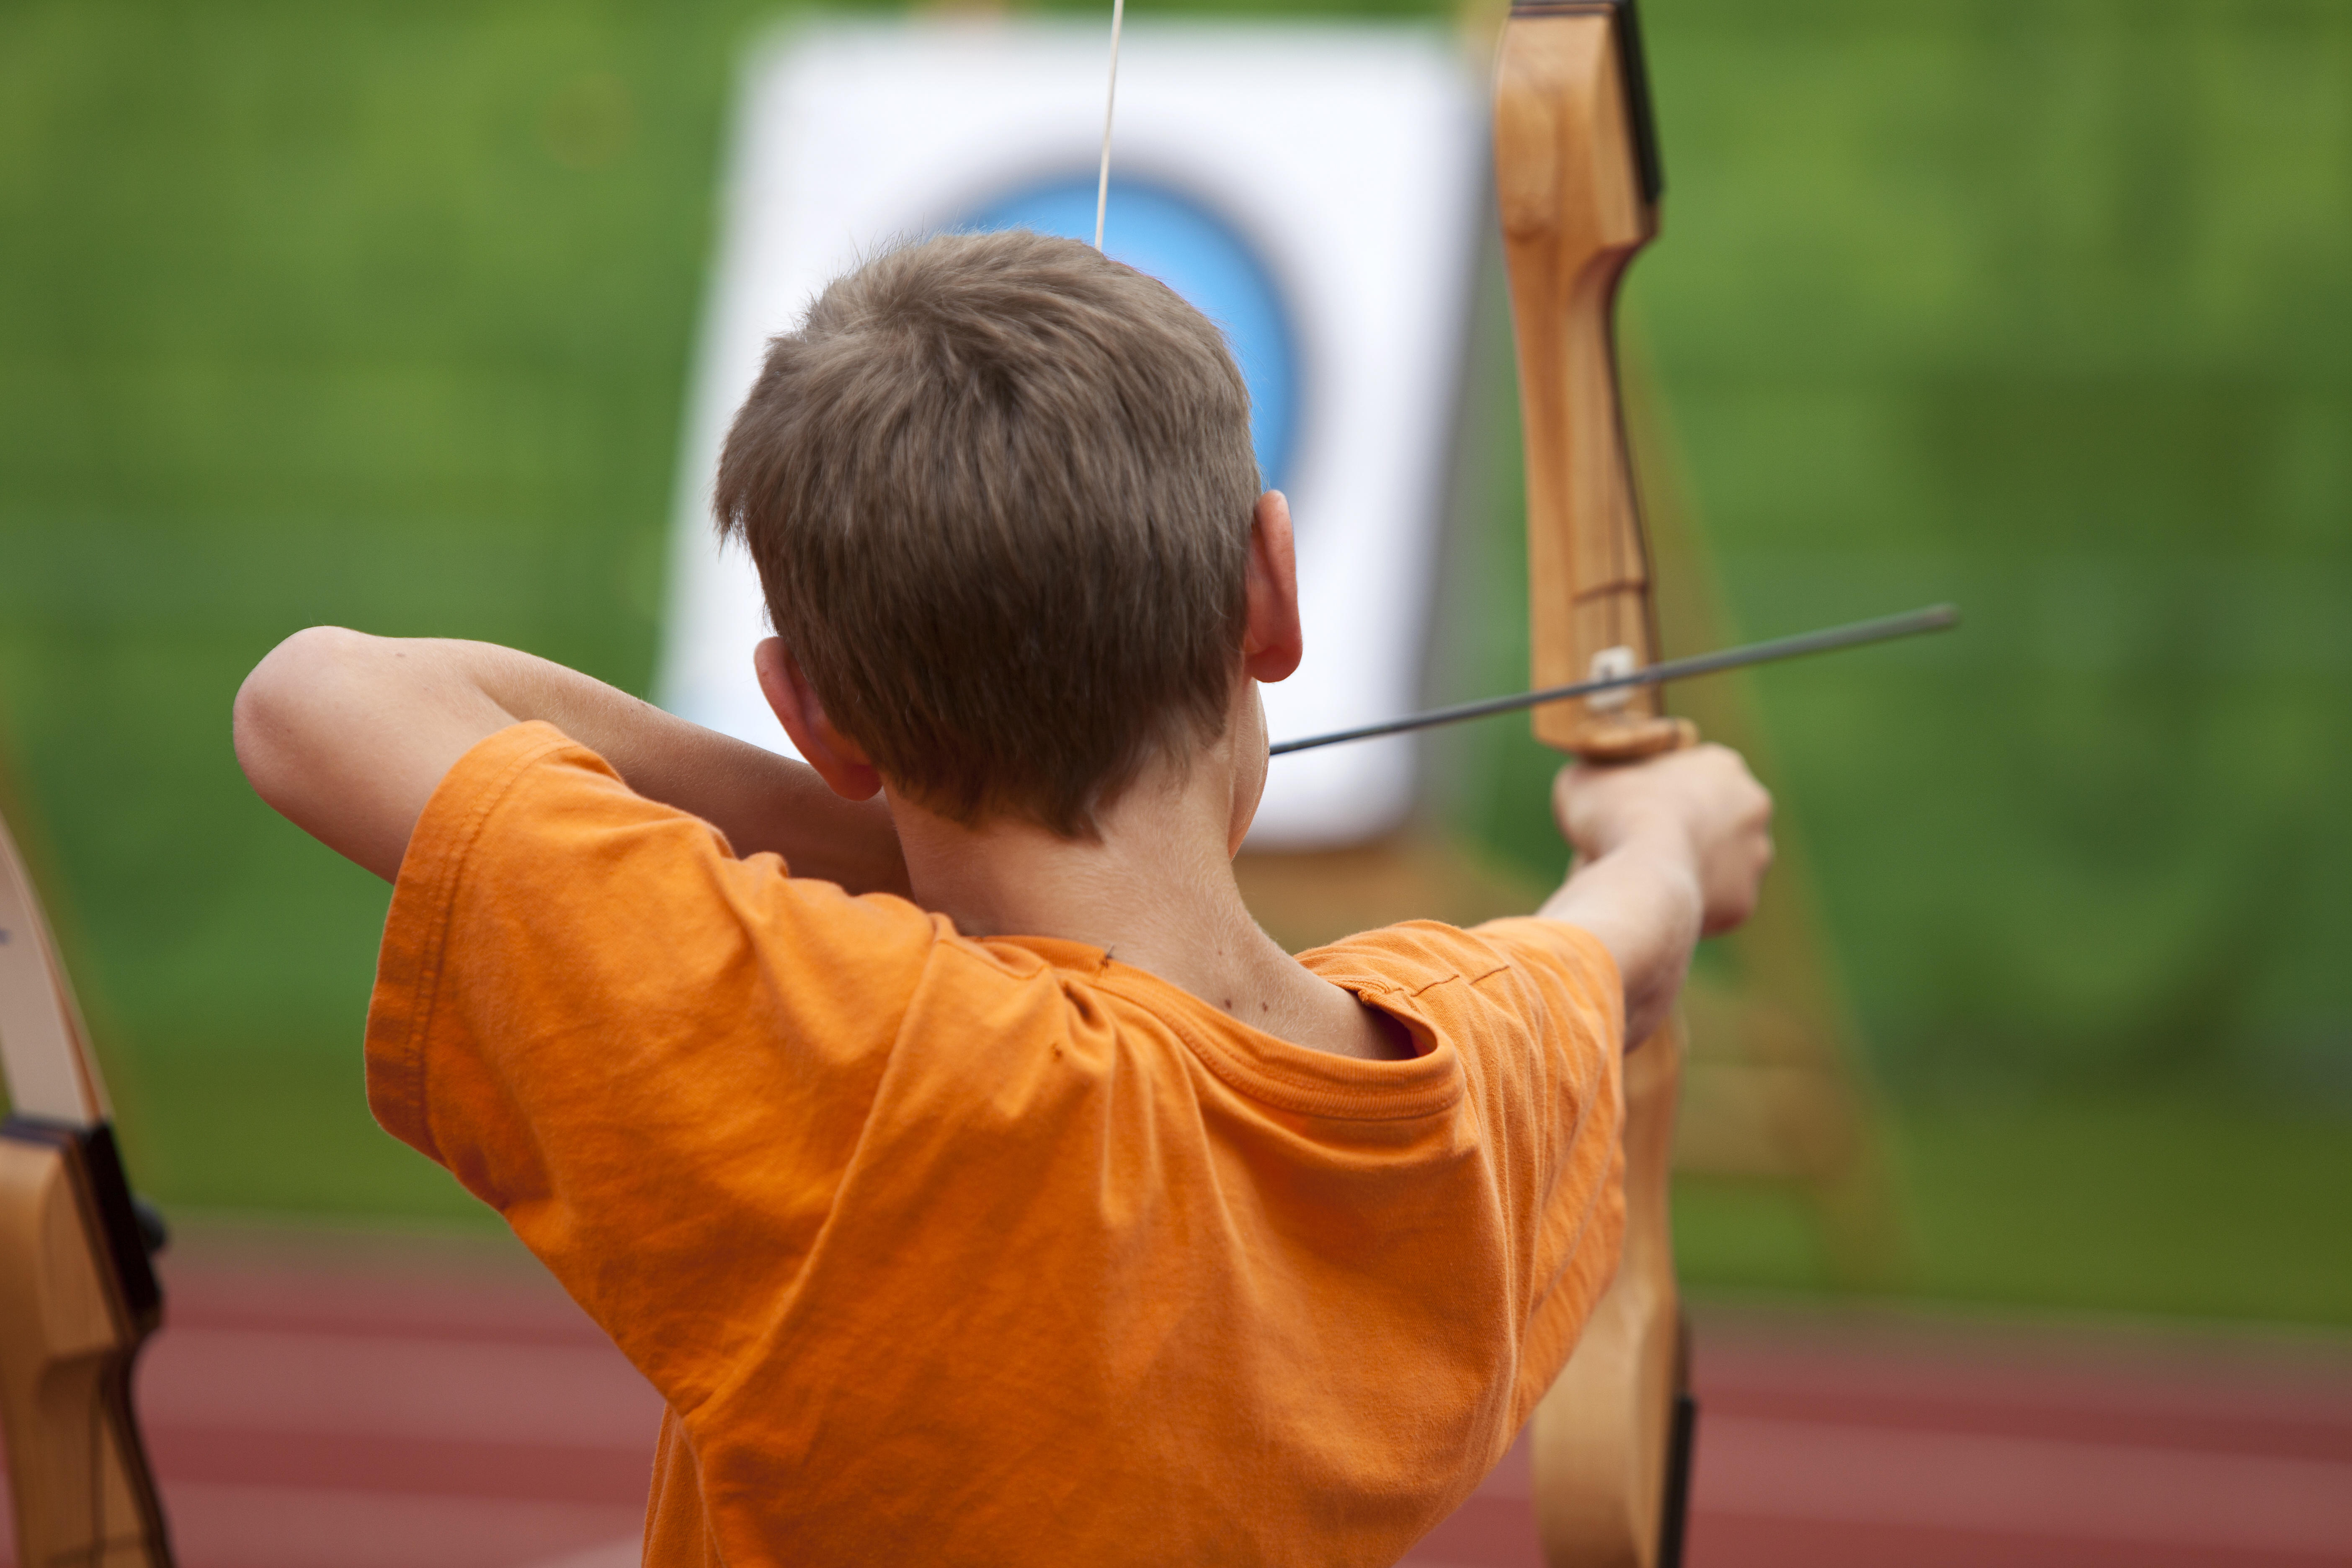 Registration Now Open for Summer Archery Sessions